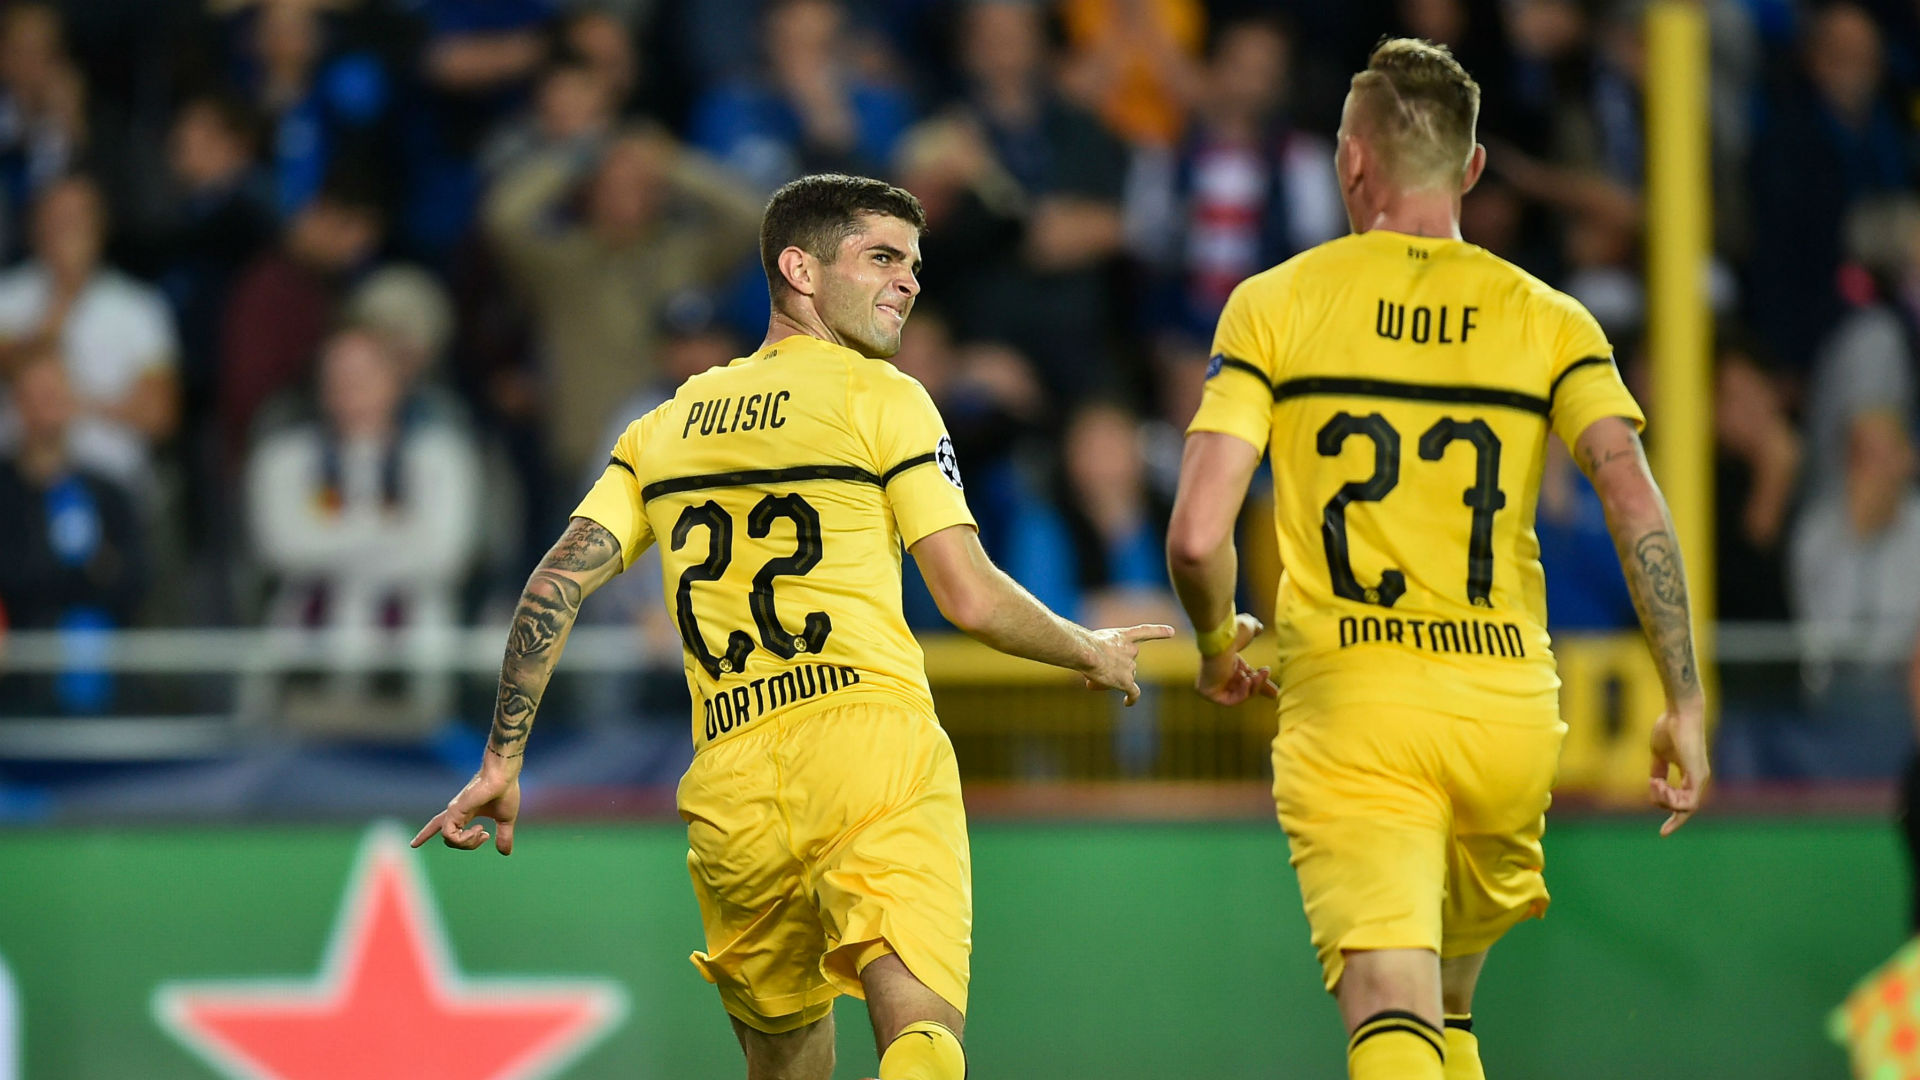 Christian Pulisic Borussia Dortmund Club Brugge Champions League 2018